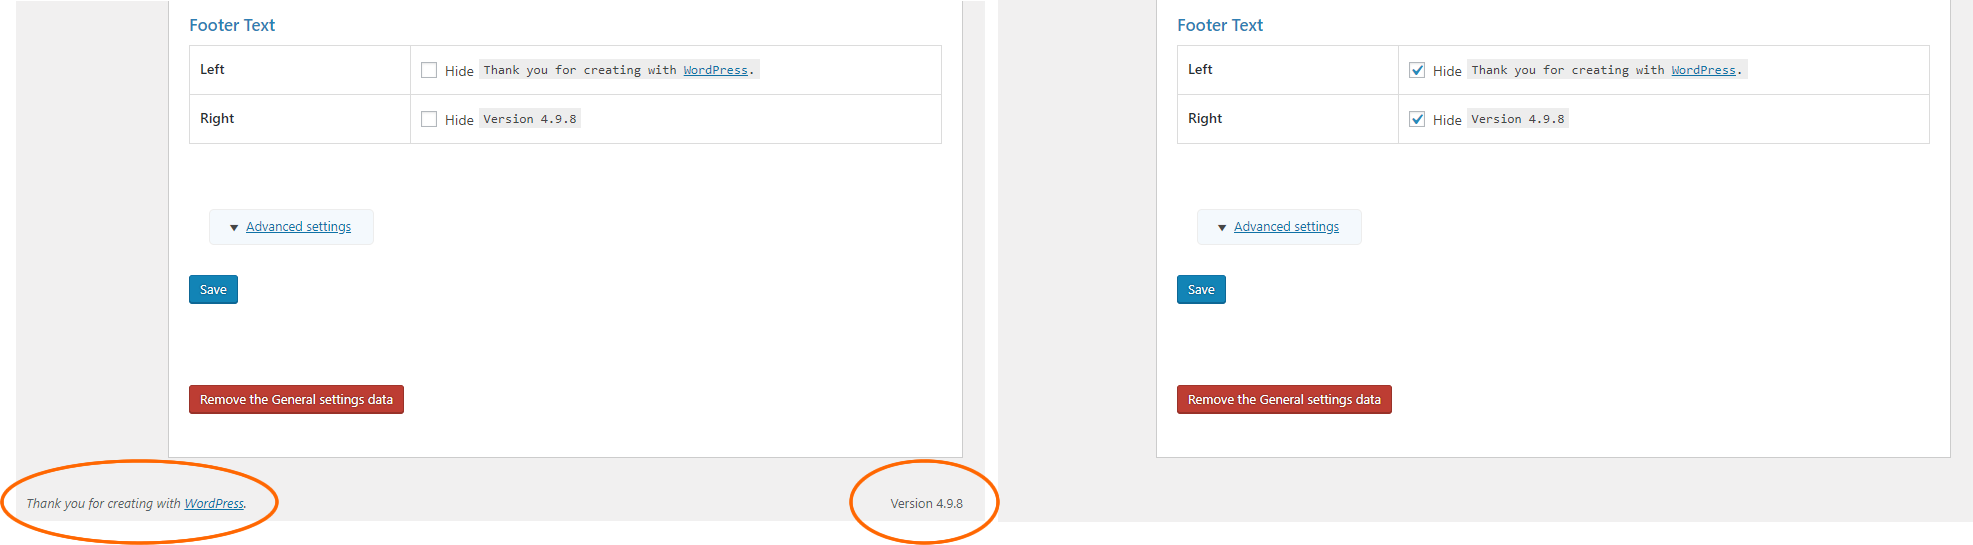 Footer text Admin General